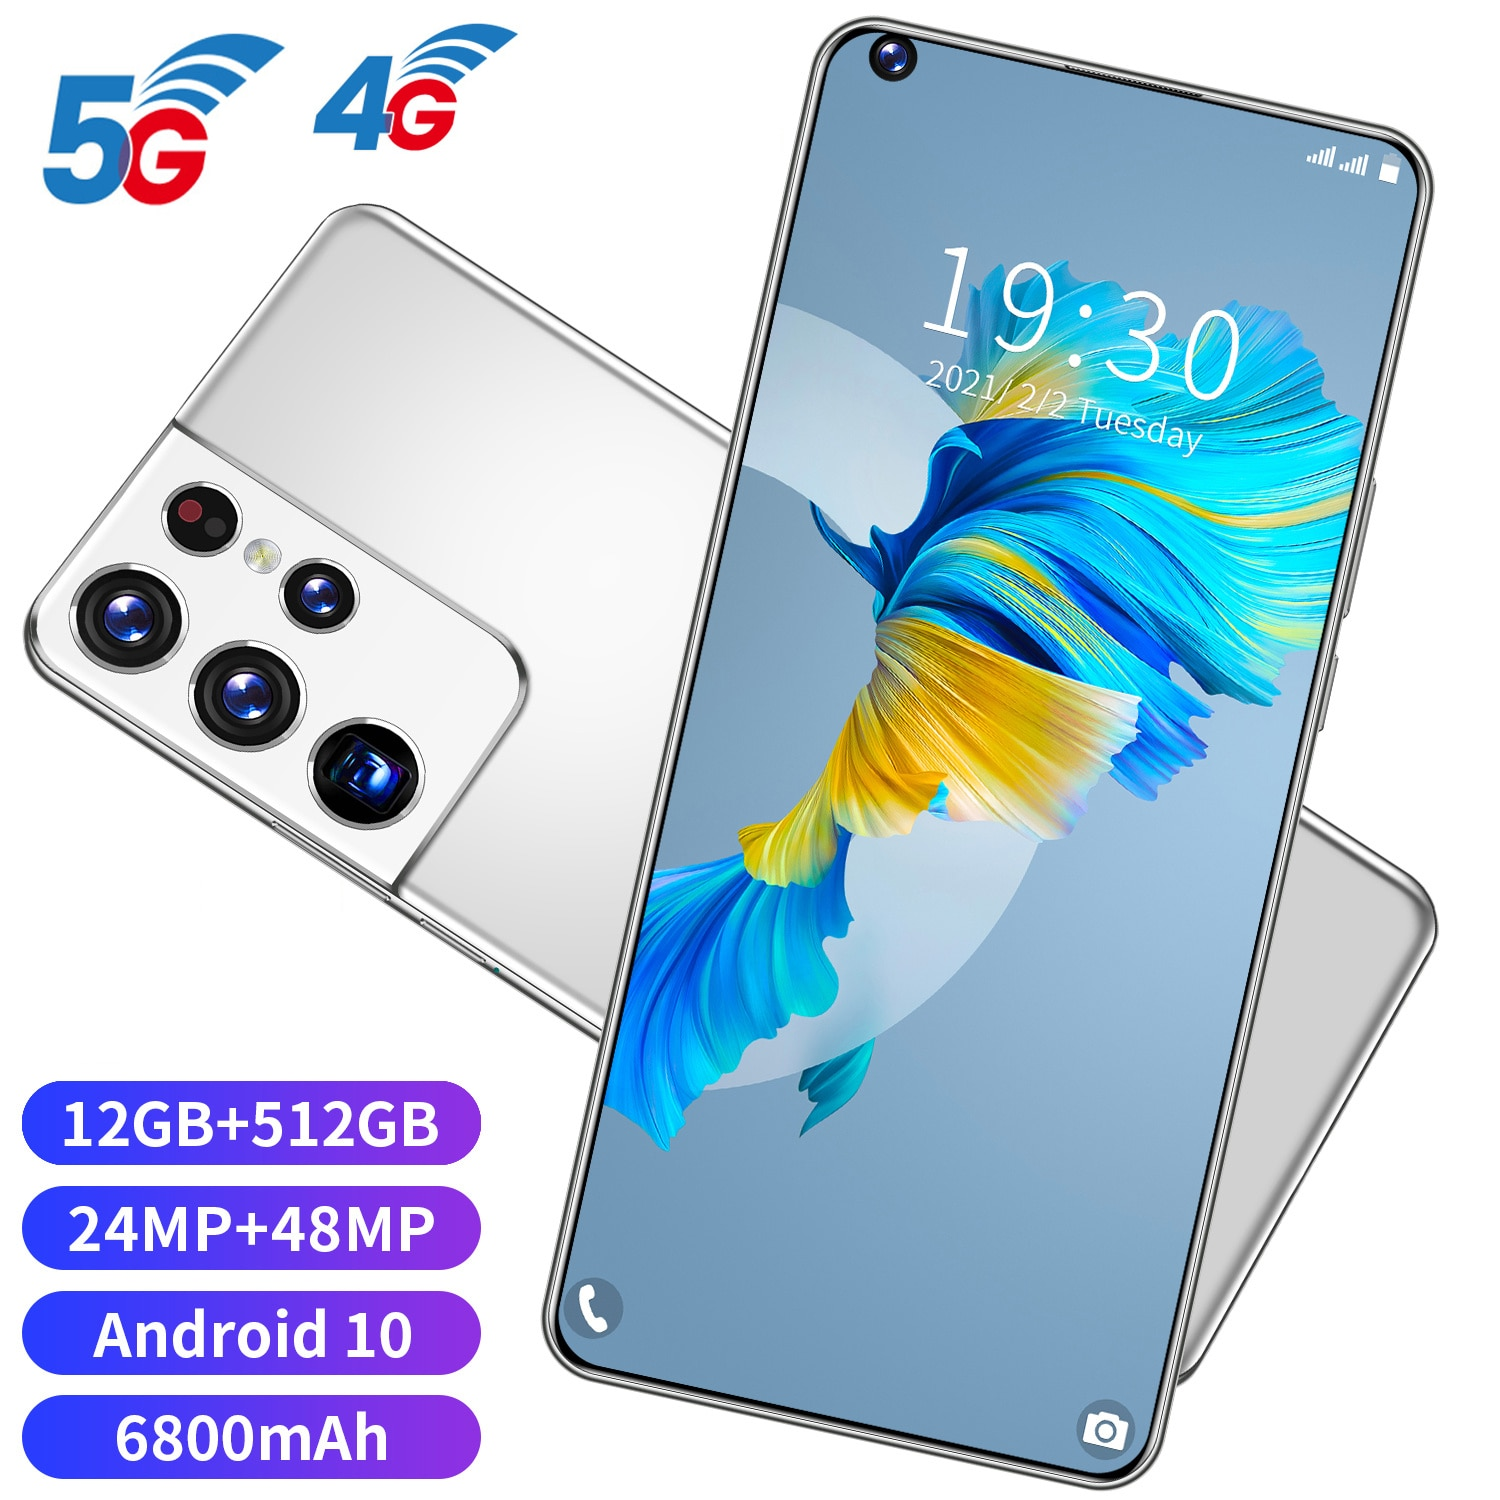 S21 Ultra 7.3 Inch Smartphone 6800mAh Unlock Global Version 4G/5G Android 10.0 24MP+48MP 12GB+512GB Celulares Smart phone